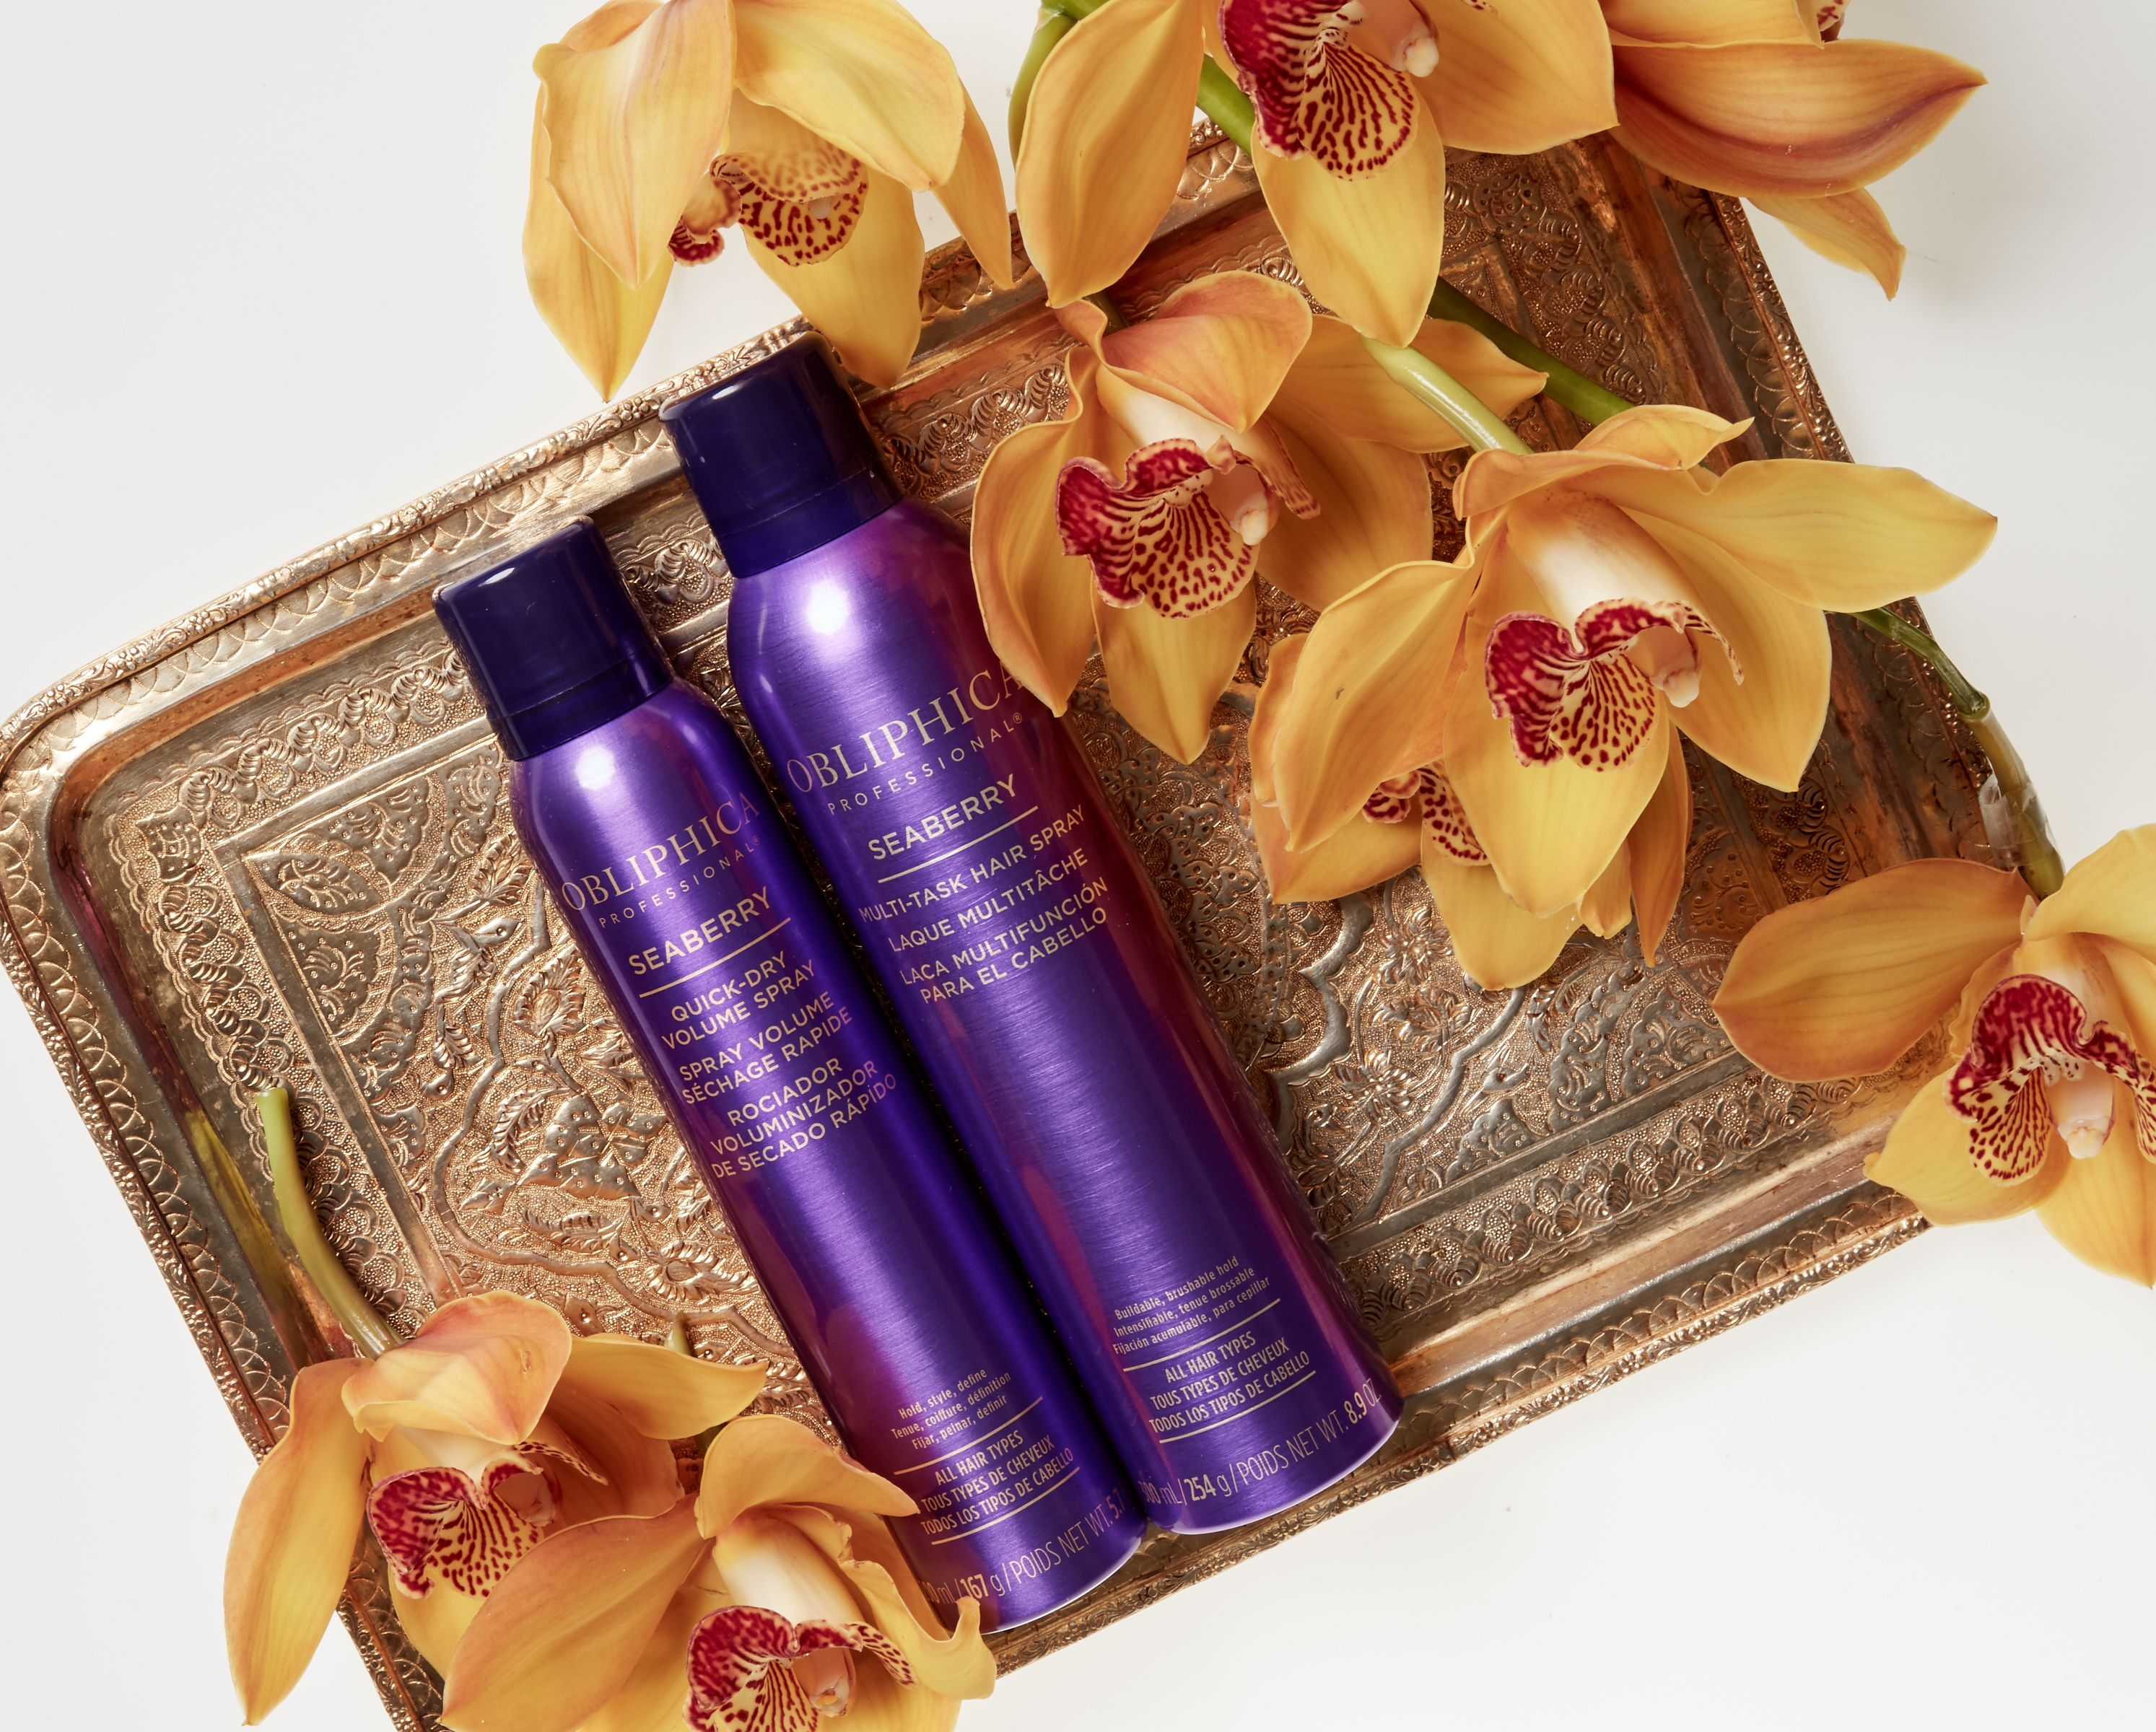 Obliphica Seaberry Hair Styling Products in 2020 Beauty